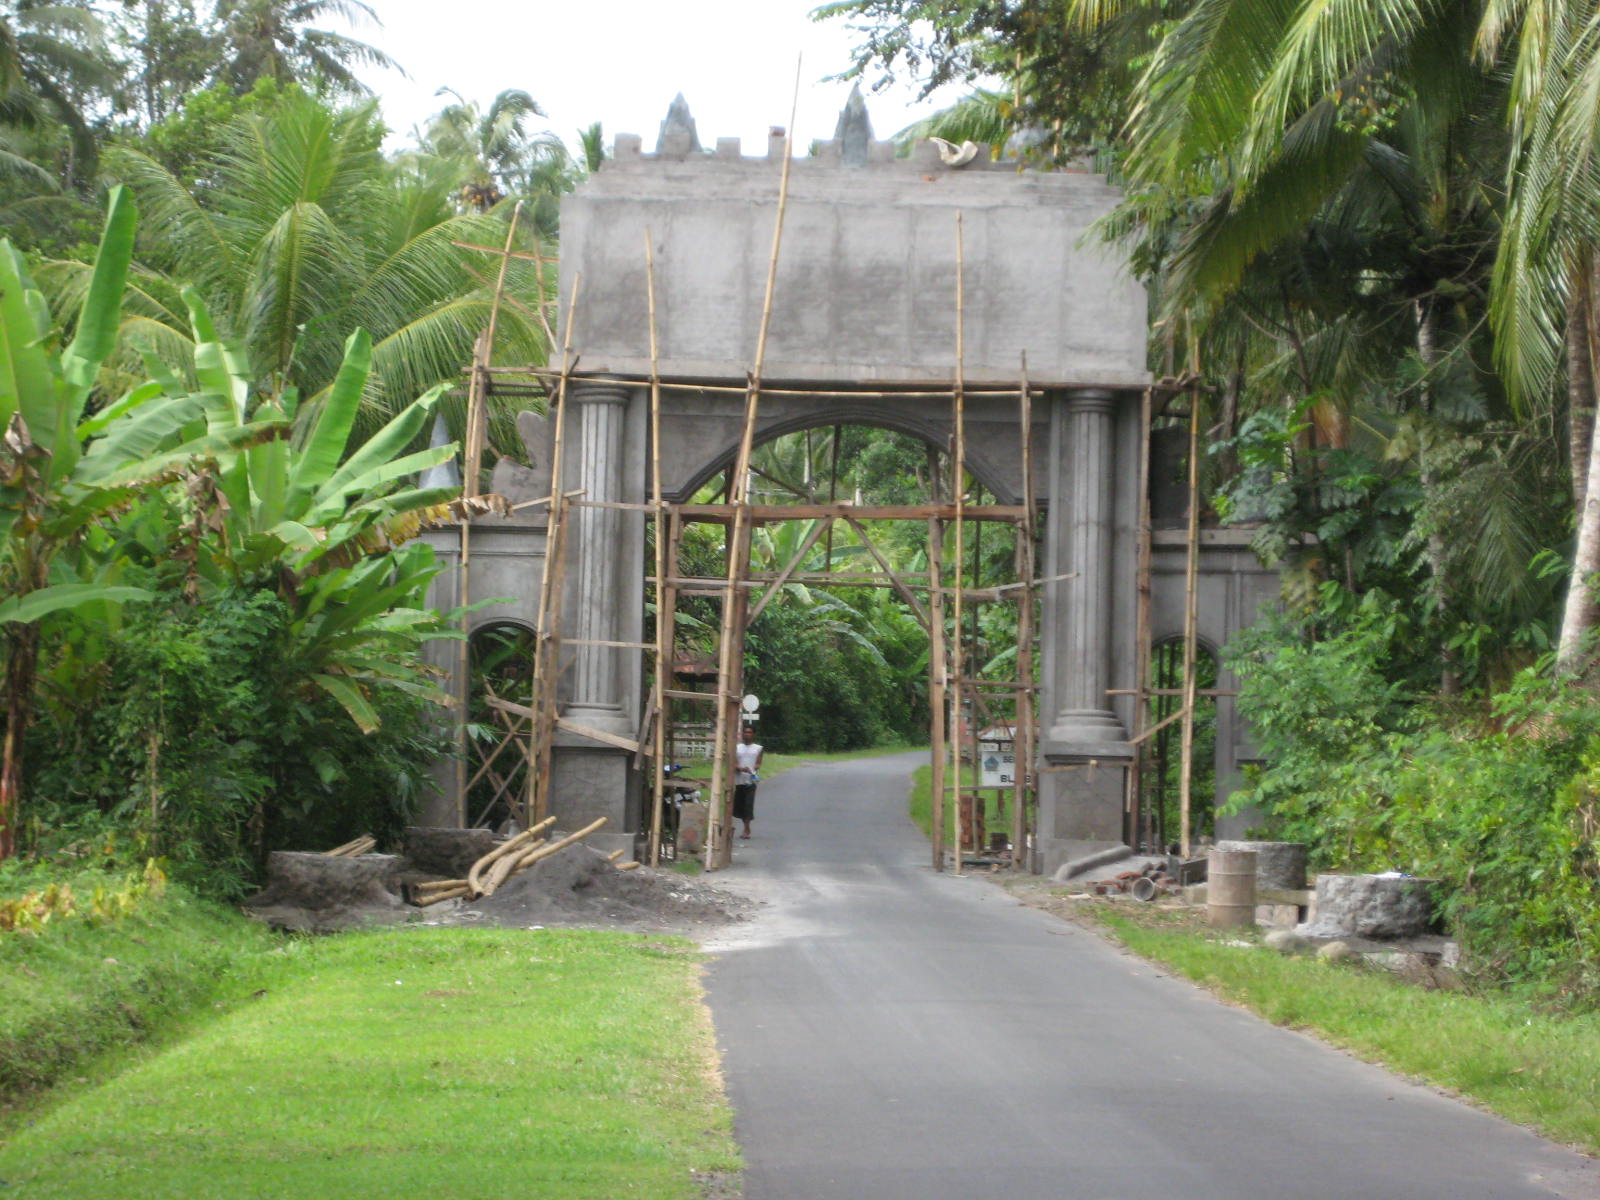 The new gate in Belimbingsari